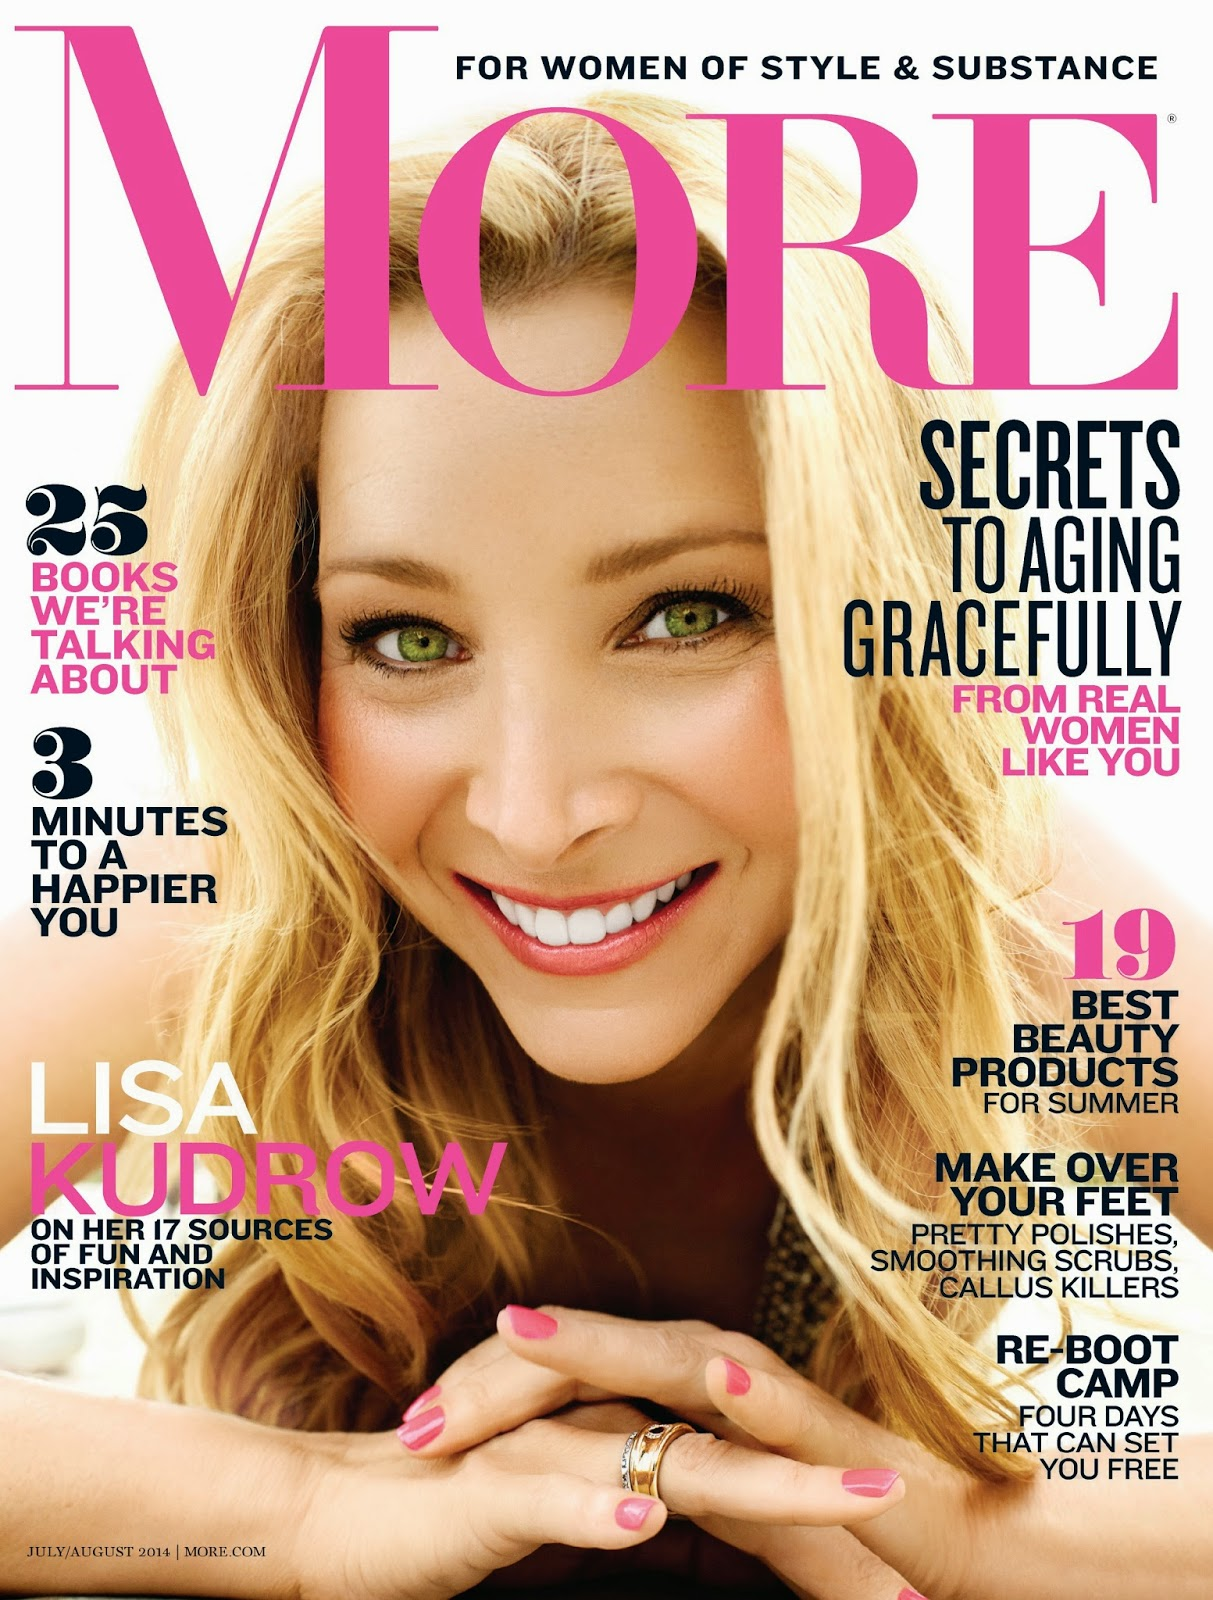 The Charmer Pages : Lisa Kudrow For More